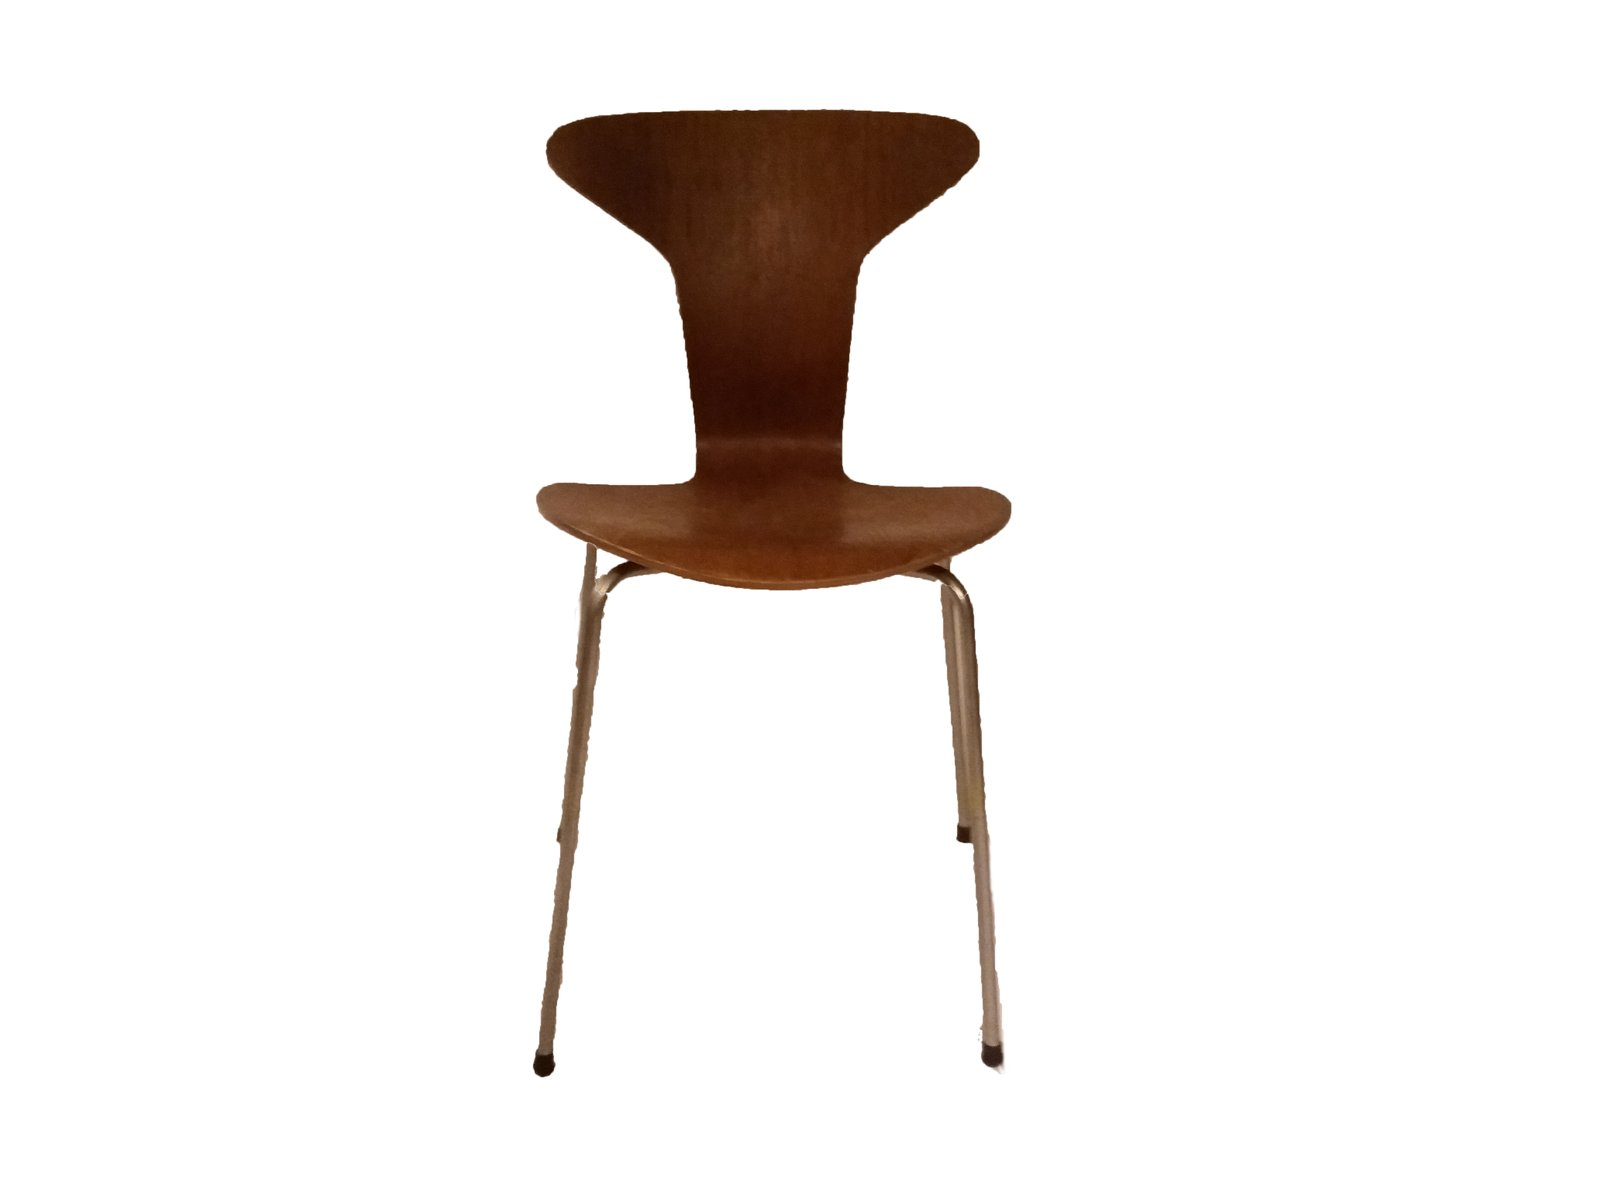 Mosquito chair by arne jacobsen 1955 for sale at pamono for Chaise arne jacobsen